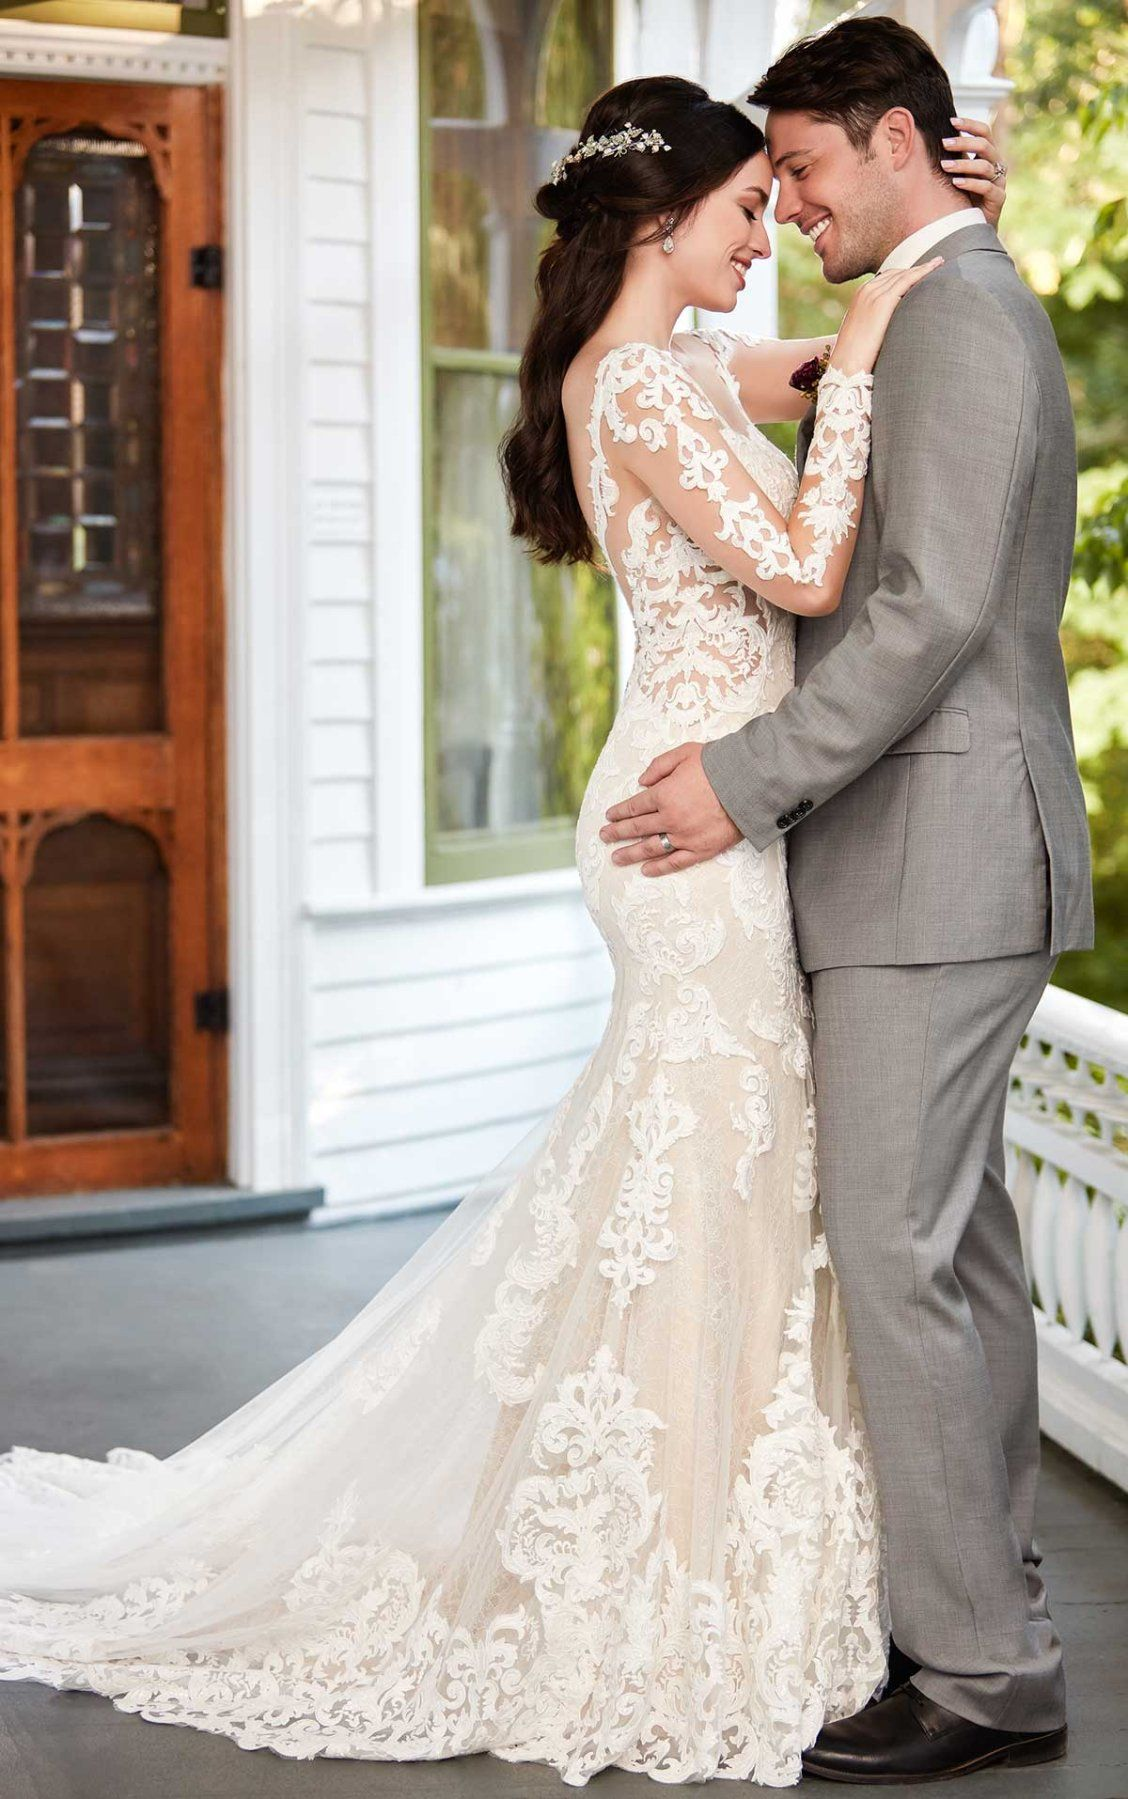 Wedding dress patterns with sleeves  LongSleeved Floral Patterned Wedding Gown  Long sleeved wedding